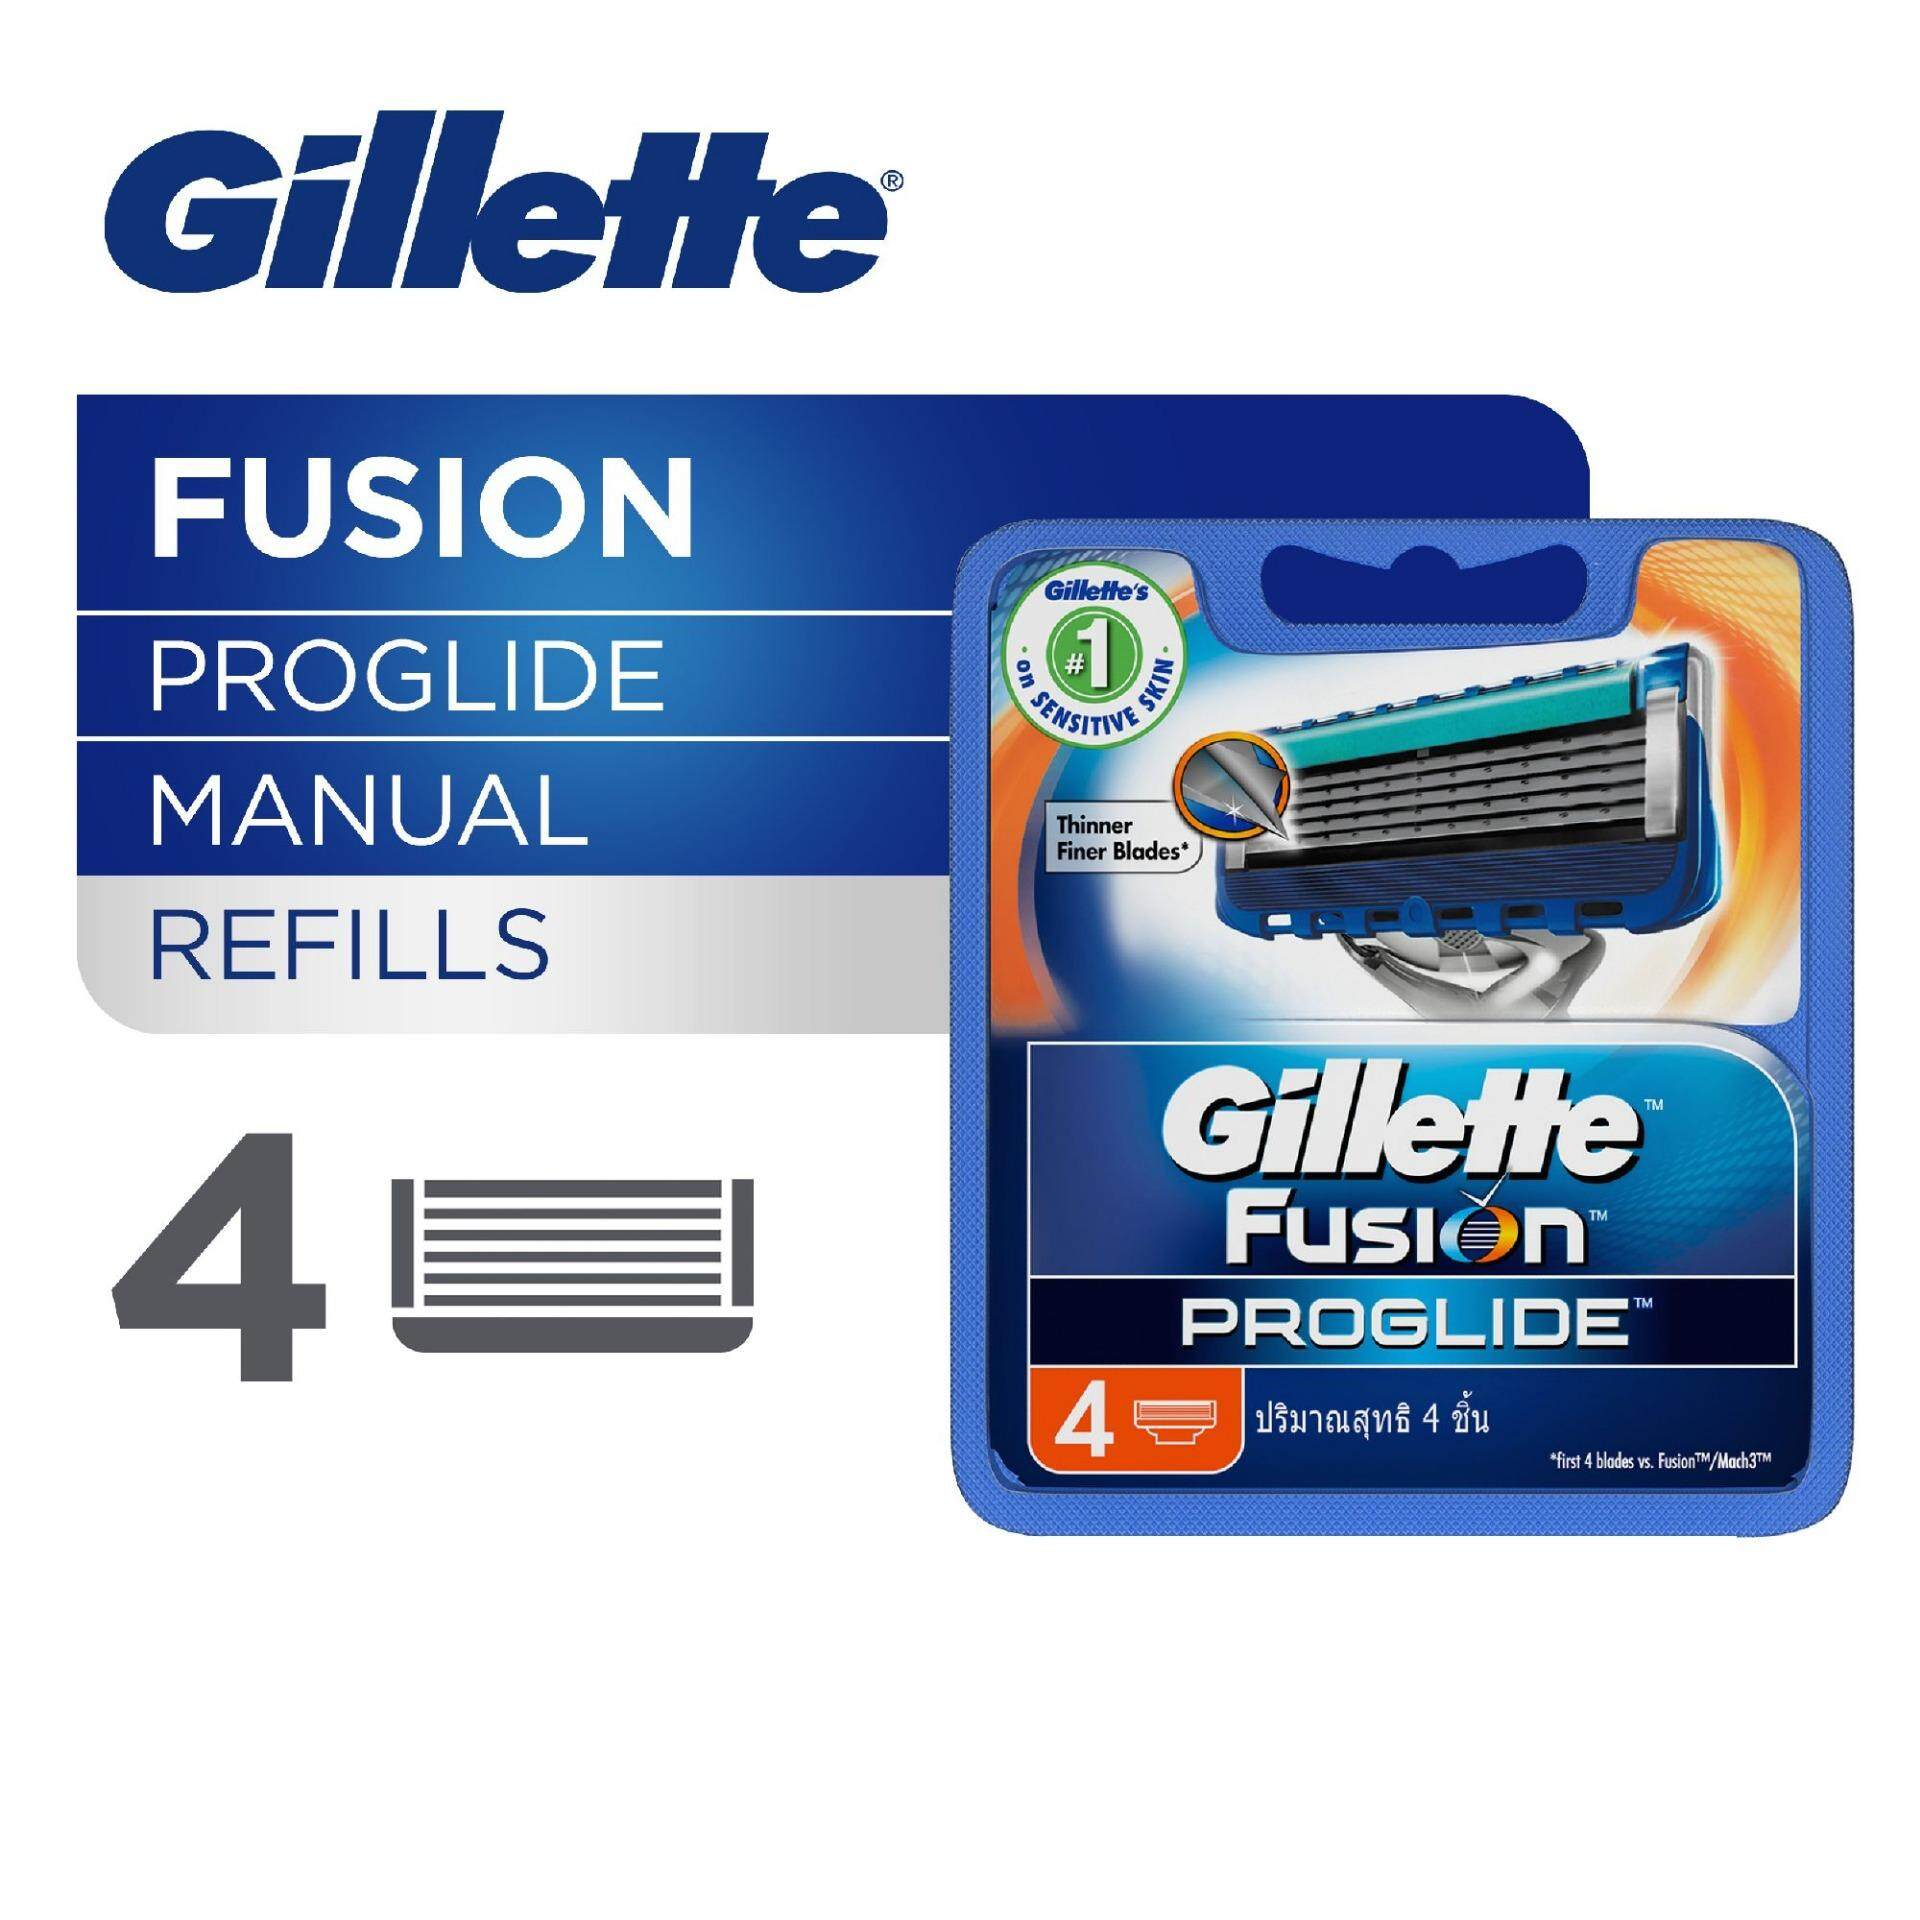 Gillette Men Fusion ProGlide Manual Men?s System Razor Blades 4 pcs